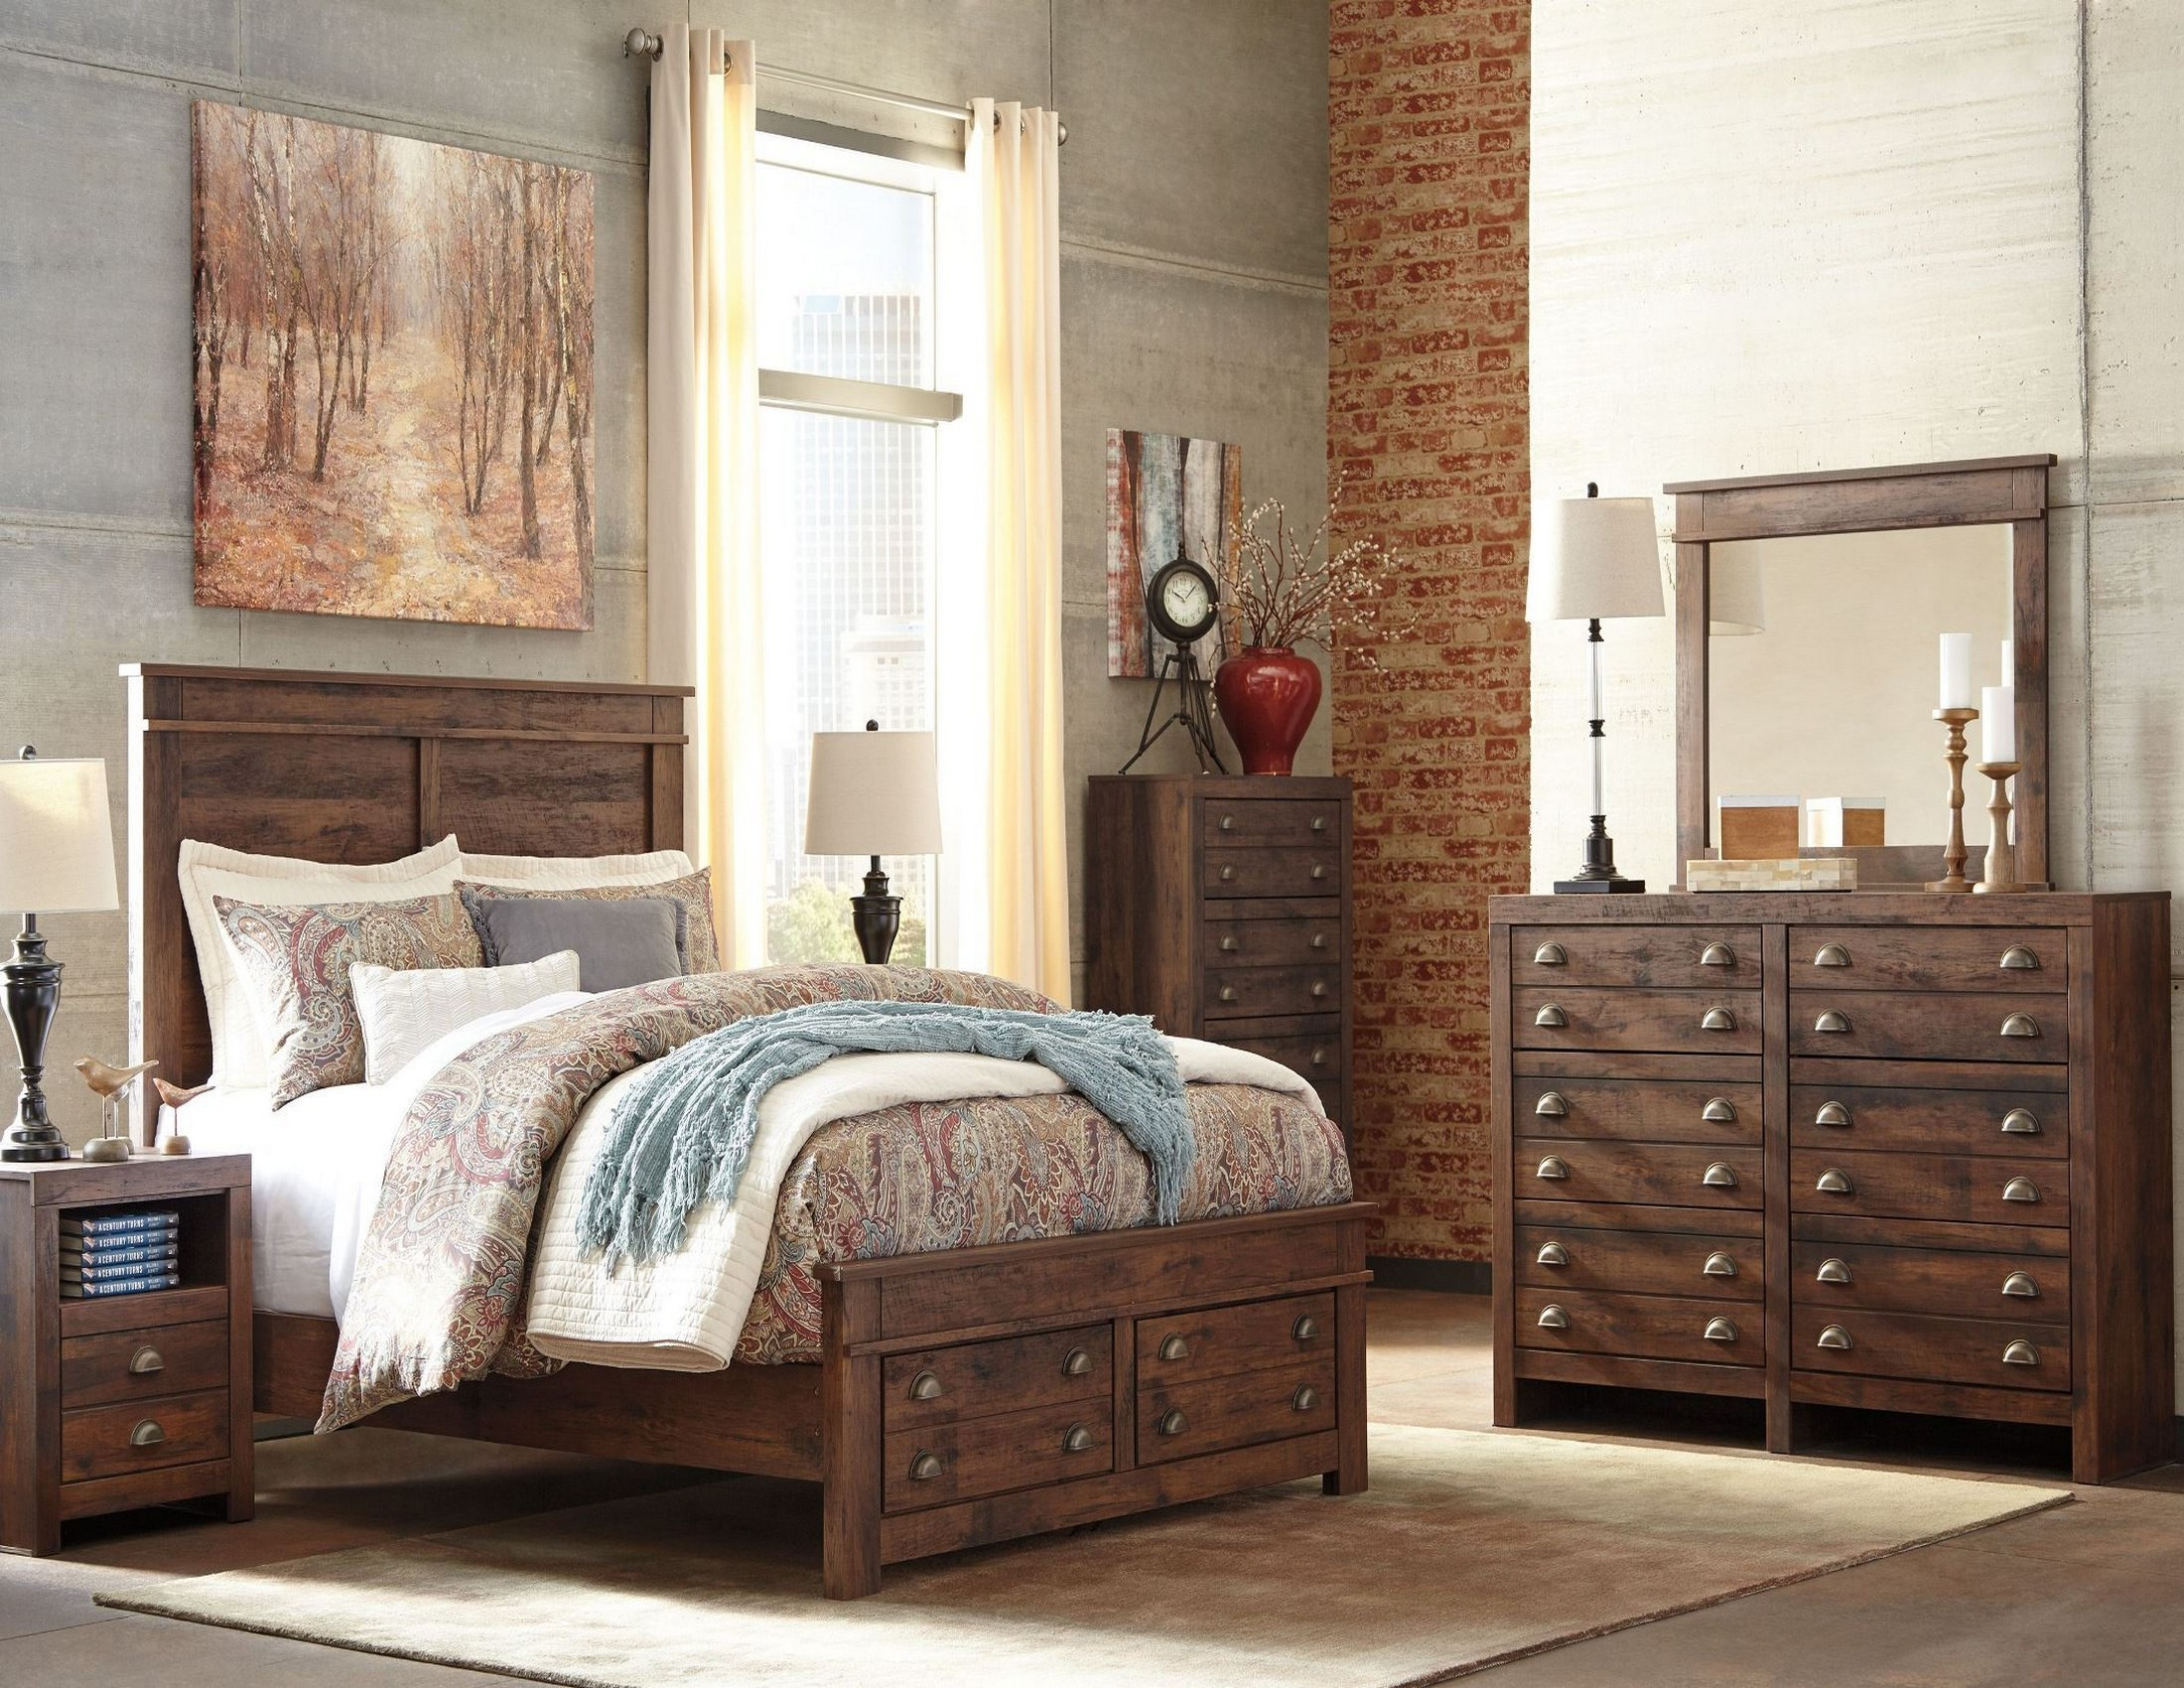 Hammerstead Brown Platform Storage Bedroom Set From Ashley